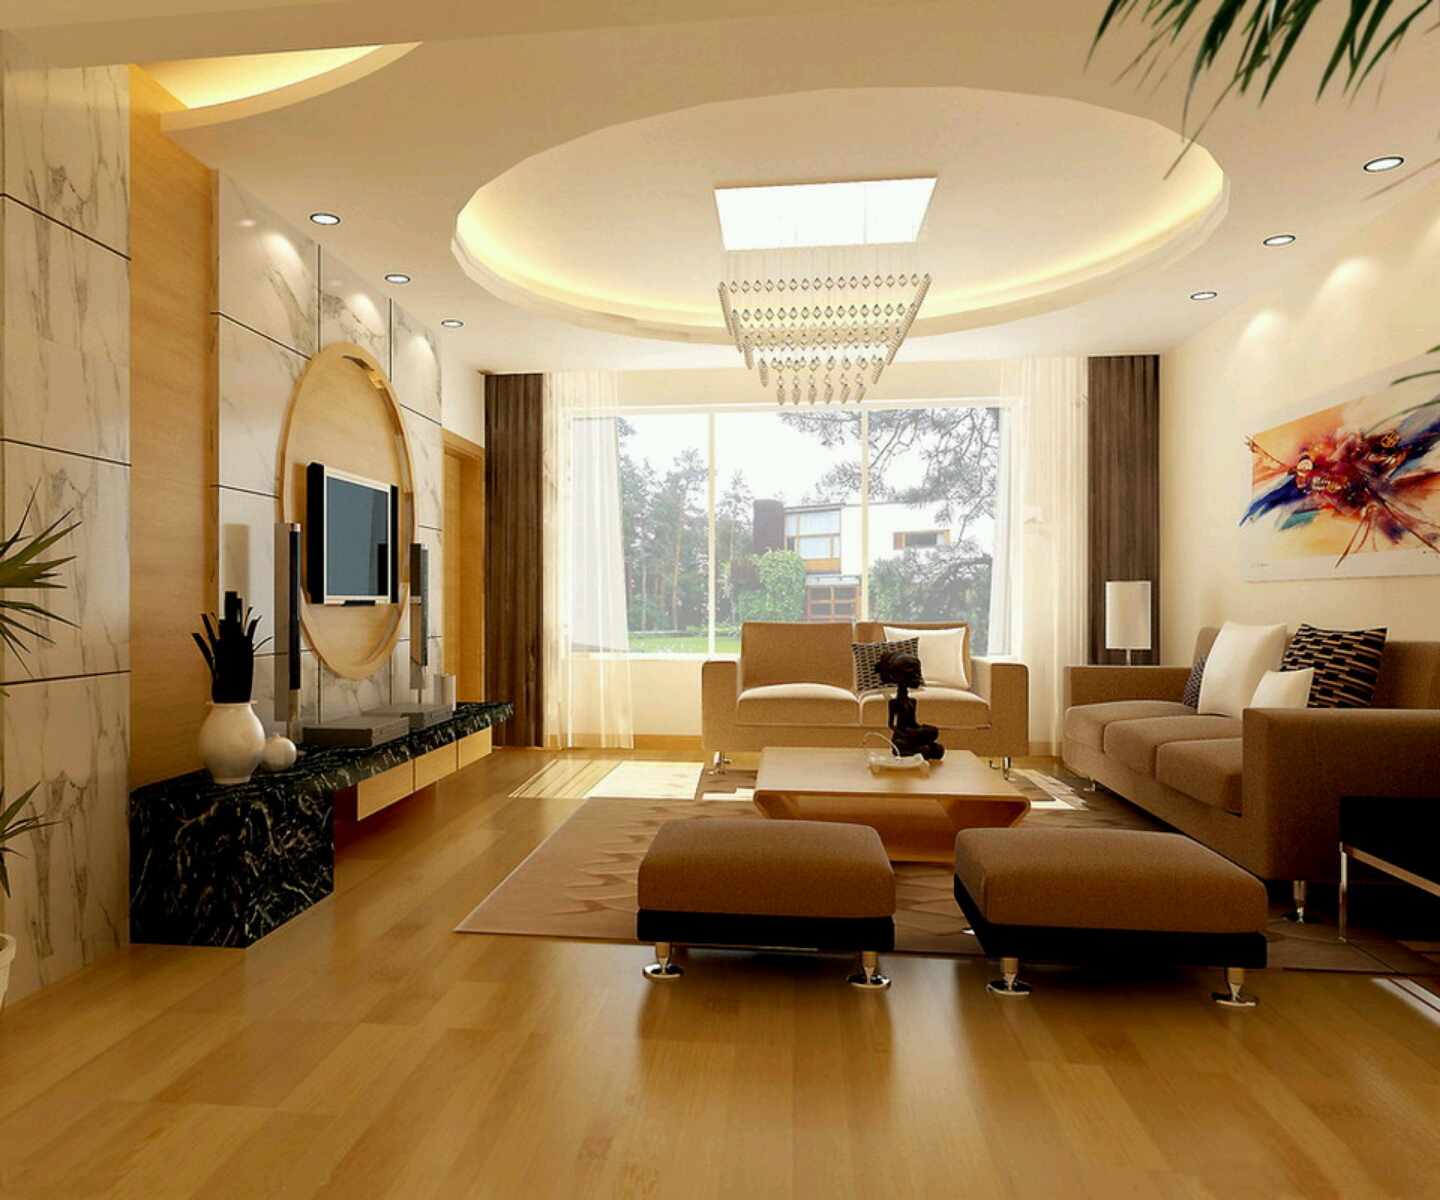 Modern interior decoration living rooms ceiling designs for Modern interior home designs ideas